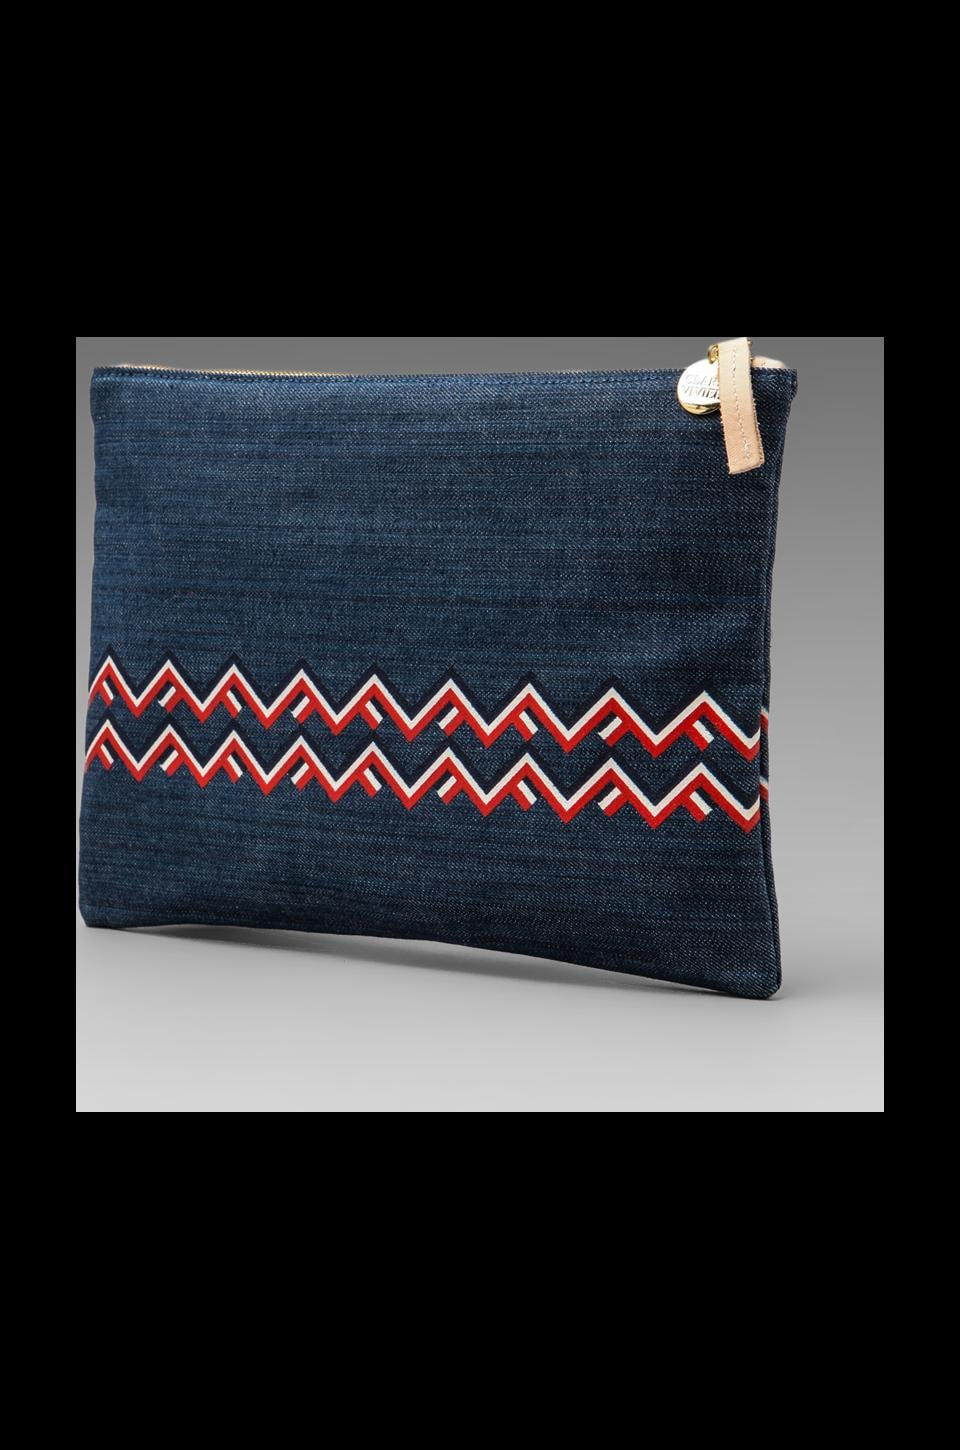 Clare V. Maison Canvas Flat Clutch in Denim & Chevron Print